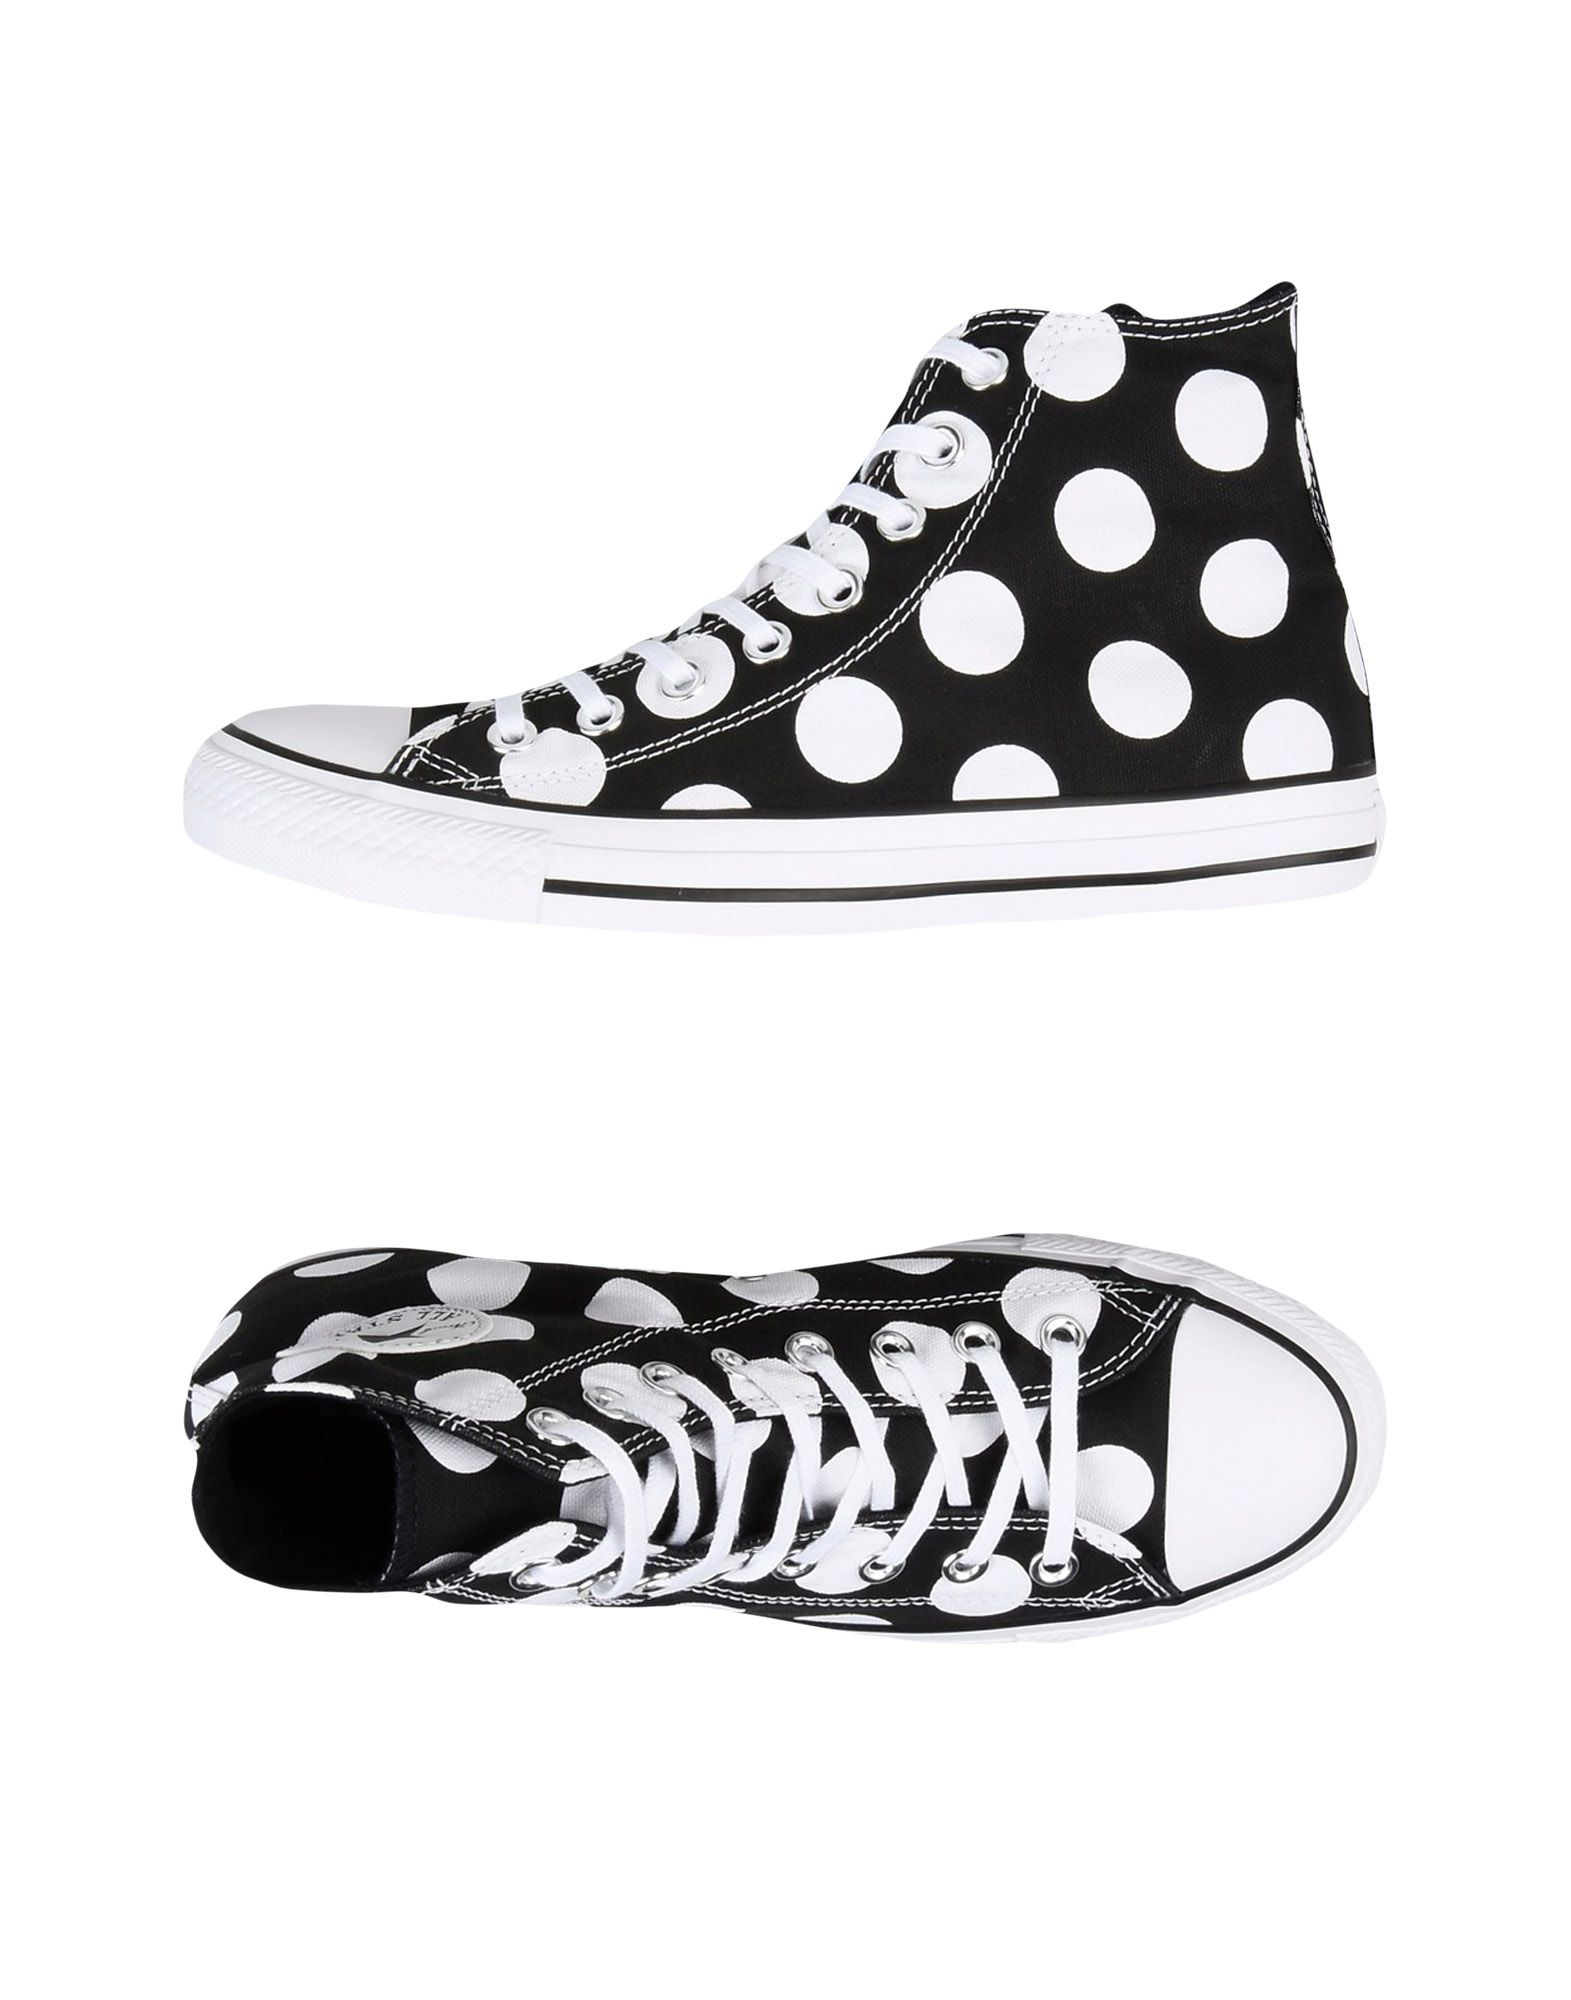 CONVERSE ALL STAR Высокие кеды и кроссовки new converse all star cool and refreshing styles women sneakers light popular summer the thin canvas skateboarding shoes 552911c